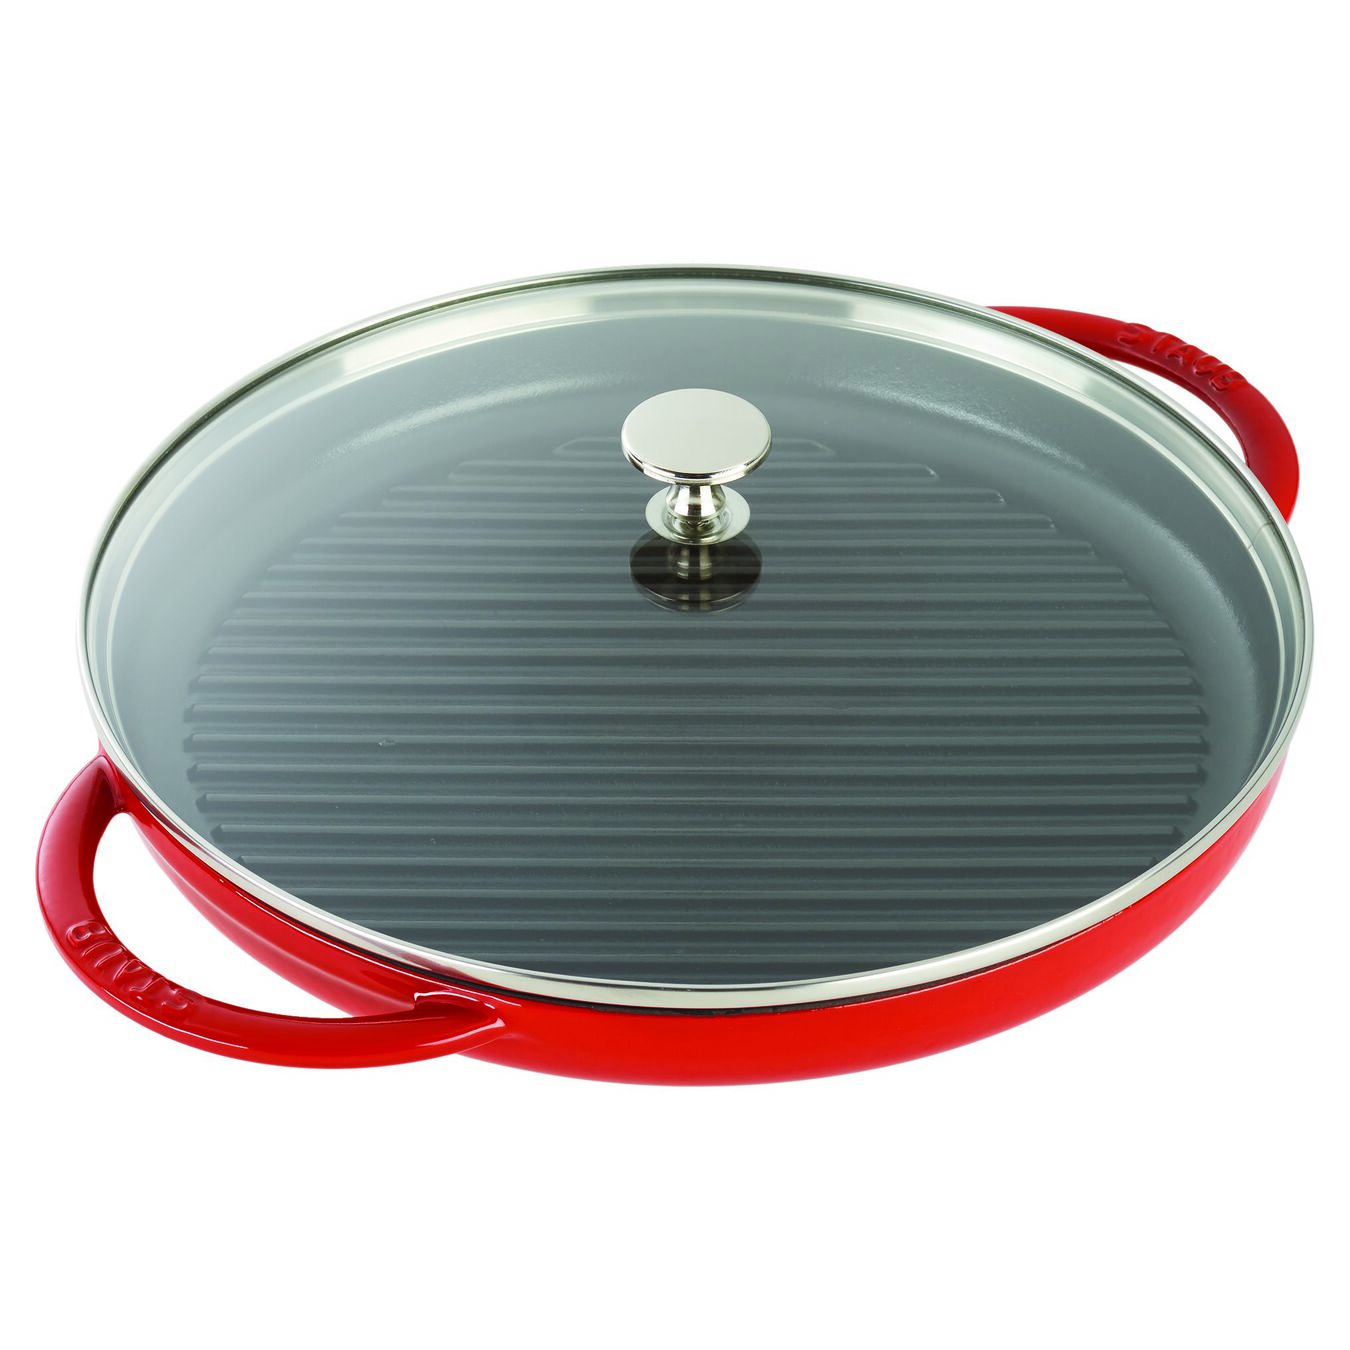 30 cm Cast iron round Gril with glass lid, Cherry,,large 3